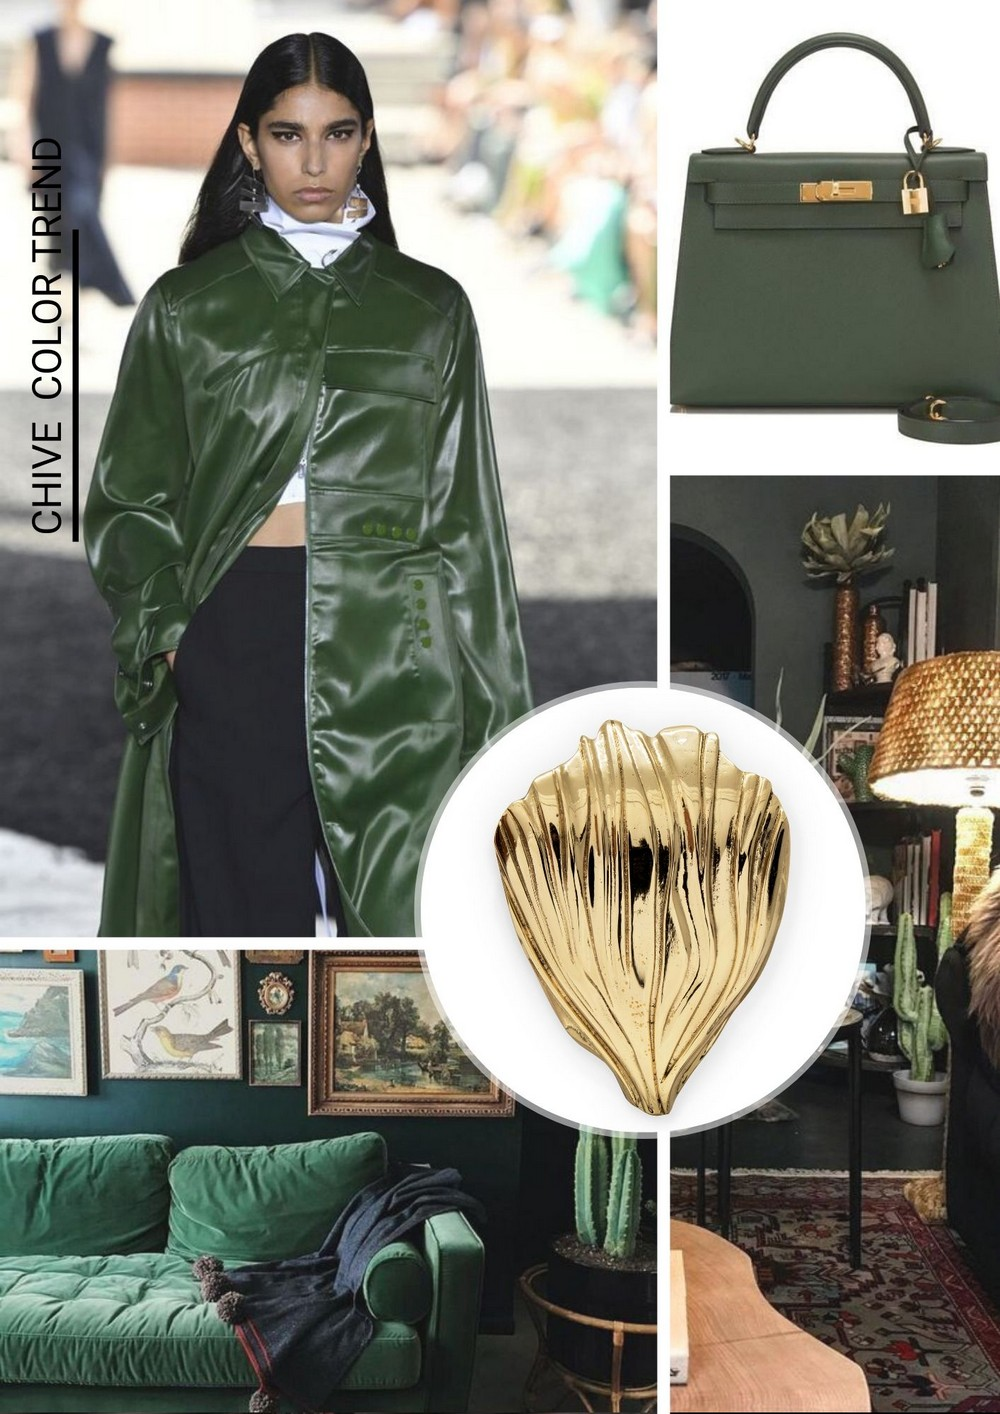 Spring Color Trends for 2020 in Both Interior Design and Fashion 2 spring color trends Spring Color Trends for 2020 in Both Interior Design and Fashion Spring Color Trends for 2020 in Both Interior Design and Fashion 2